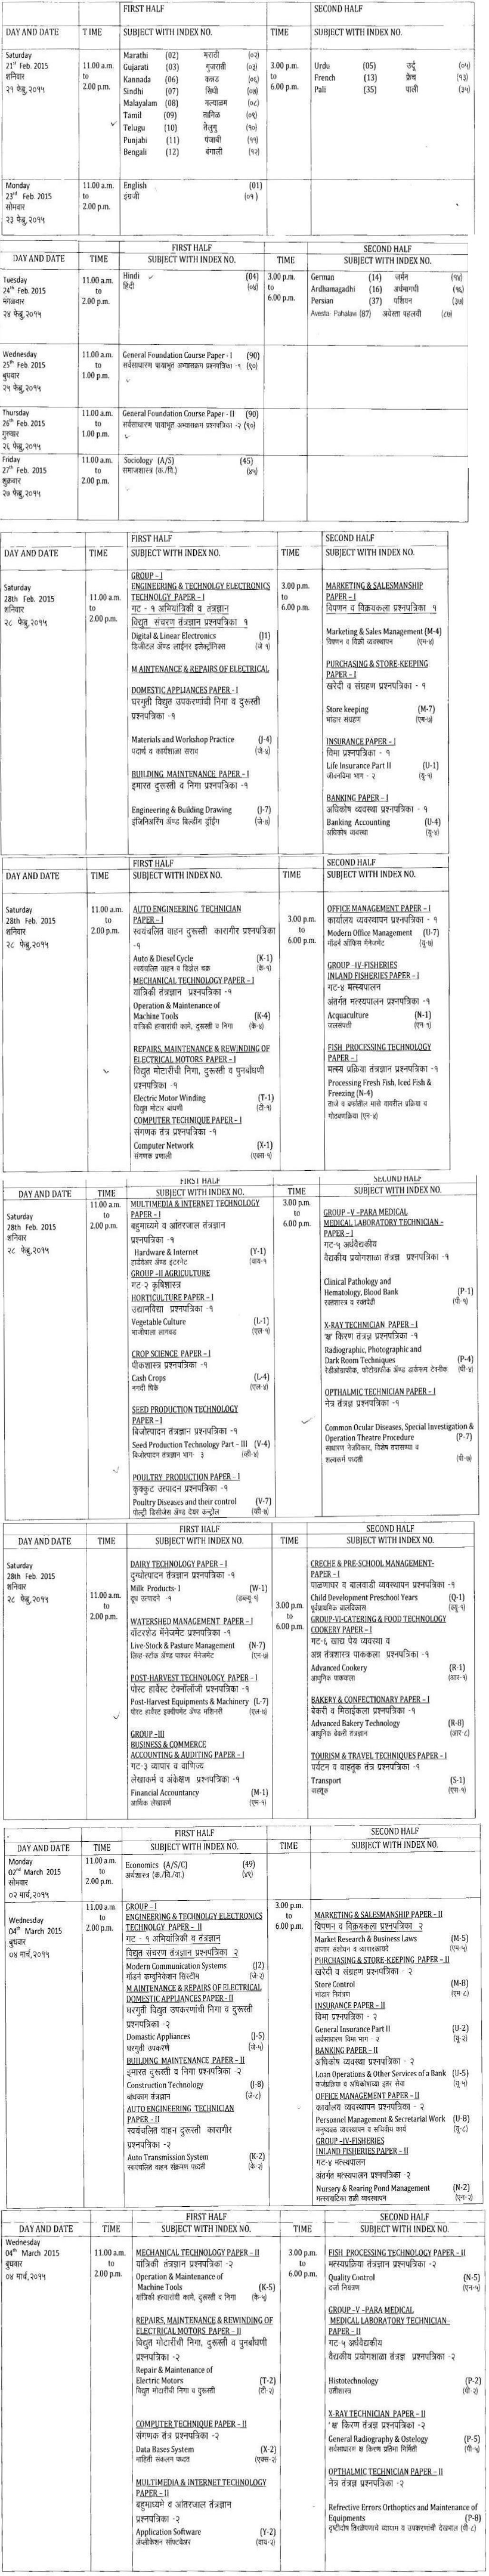 icse board time table 2015 Goa board 12th time table 2017, goa board (gbshse) hssc  filed under: 10th result tagged with: mah ssc result 2015 , maharashtra ssc result 2015 leave a reply cancel reply.